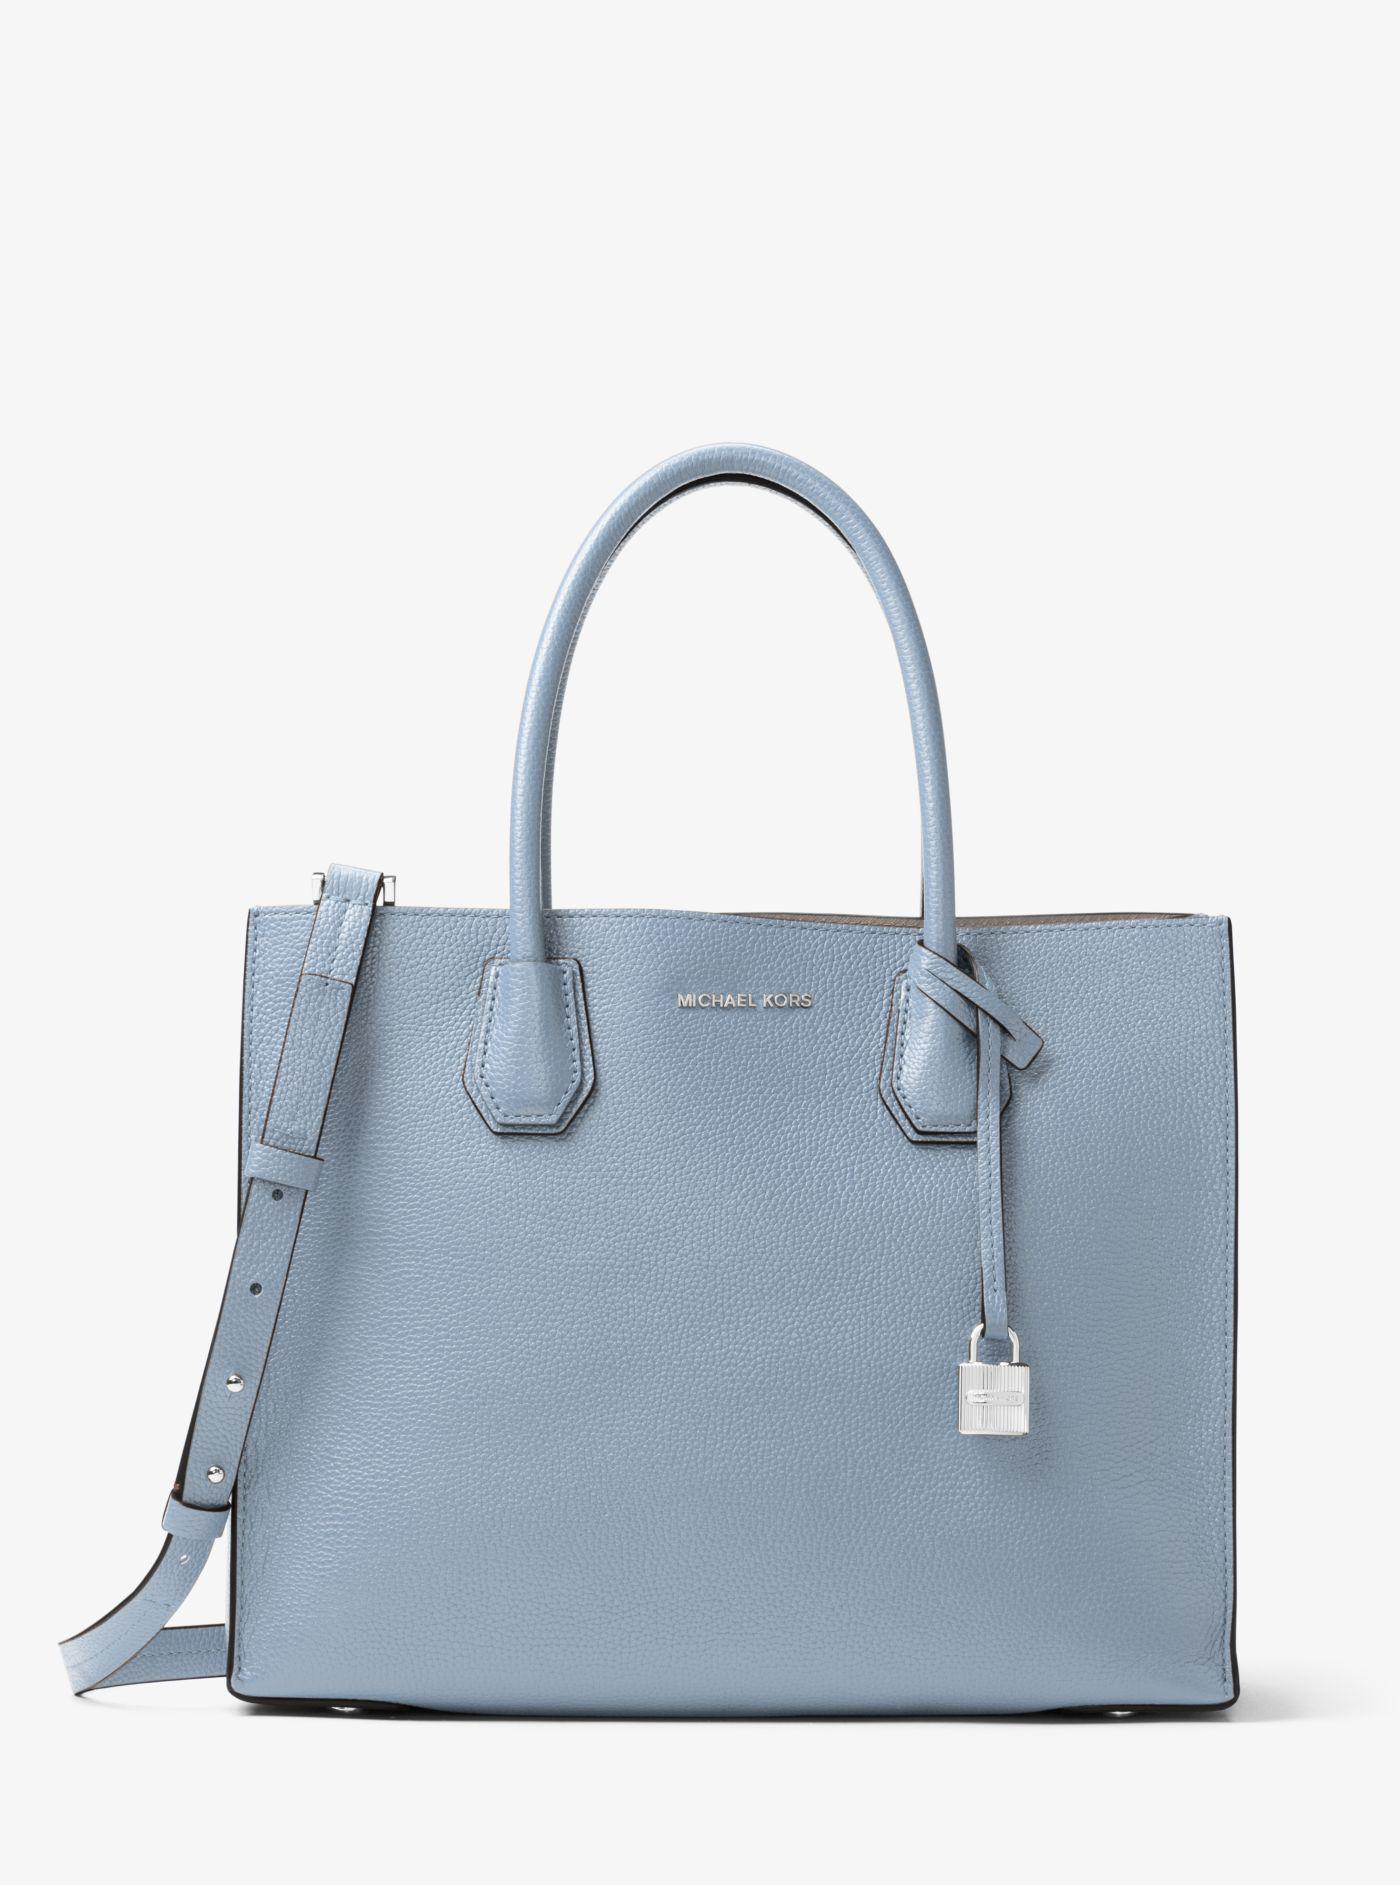 a07fb0c1b48dd Michael Kors Mercer Large Leather Tote in Blue - Lyst